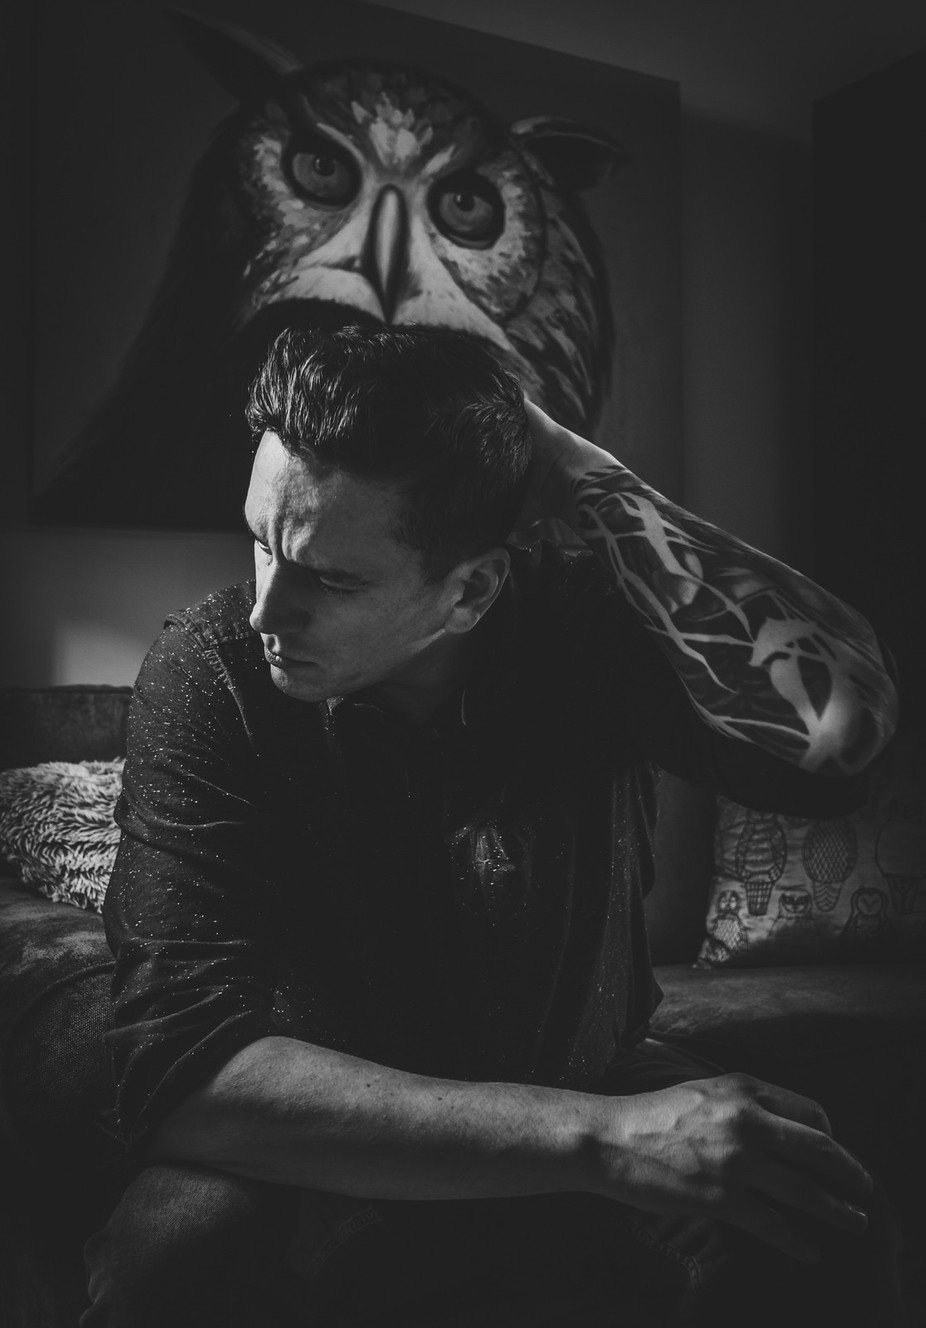 Owl Painting by knoxphoto - Selfies In Black and White Photo Contest